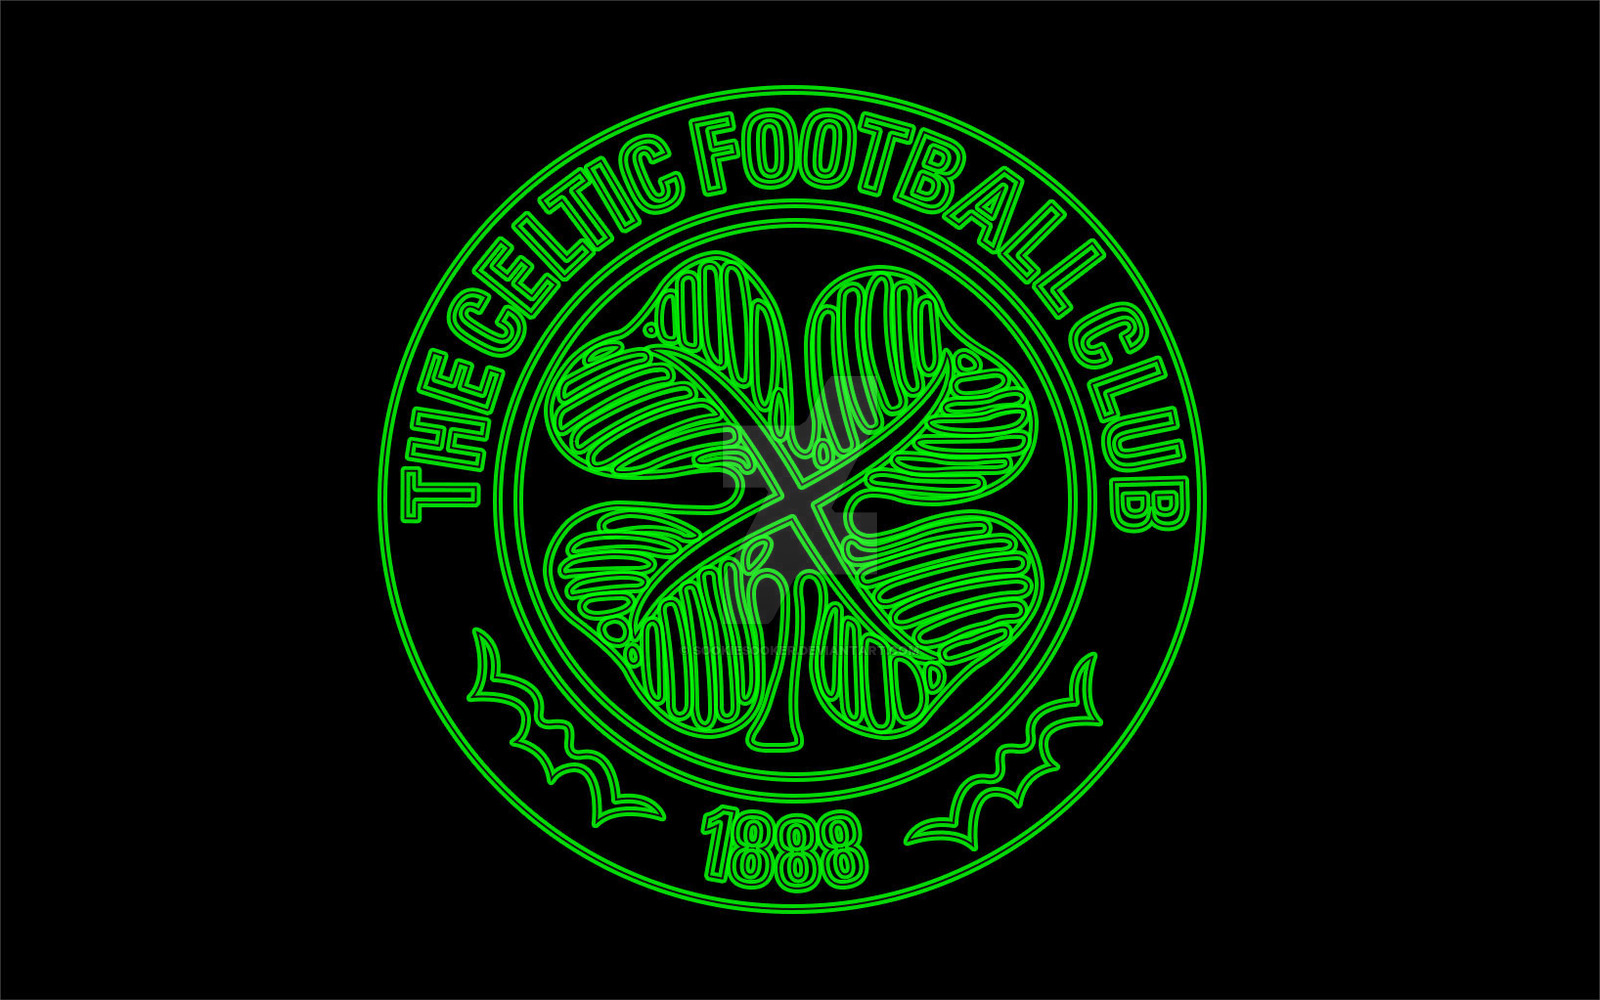 1600x1000 - Celtic F.C. Wallpapers 10